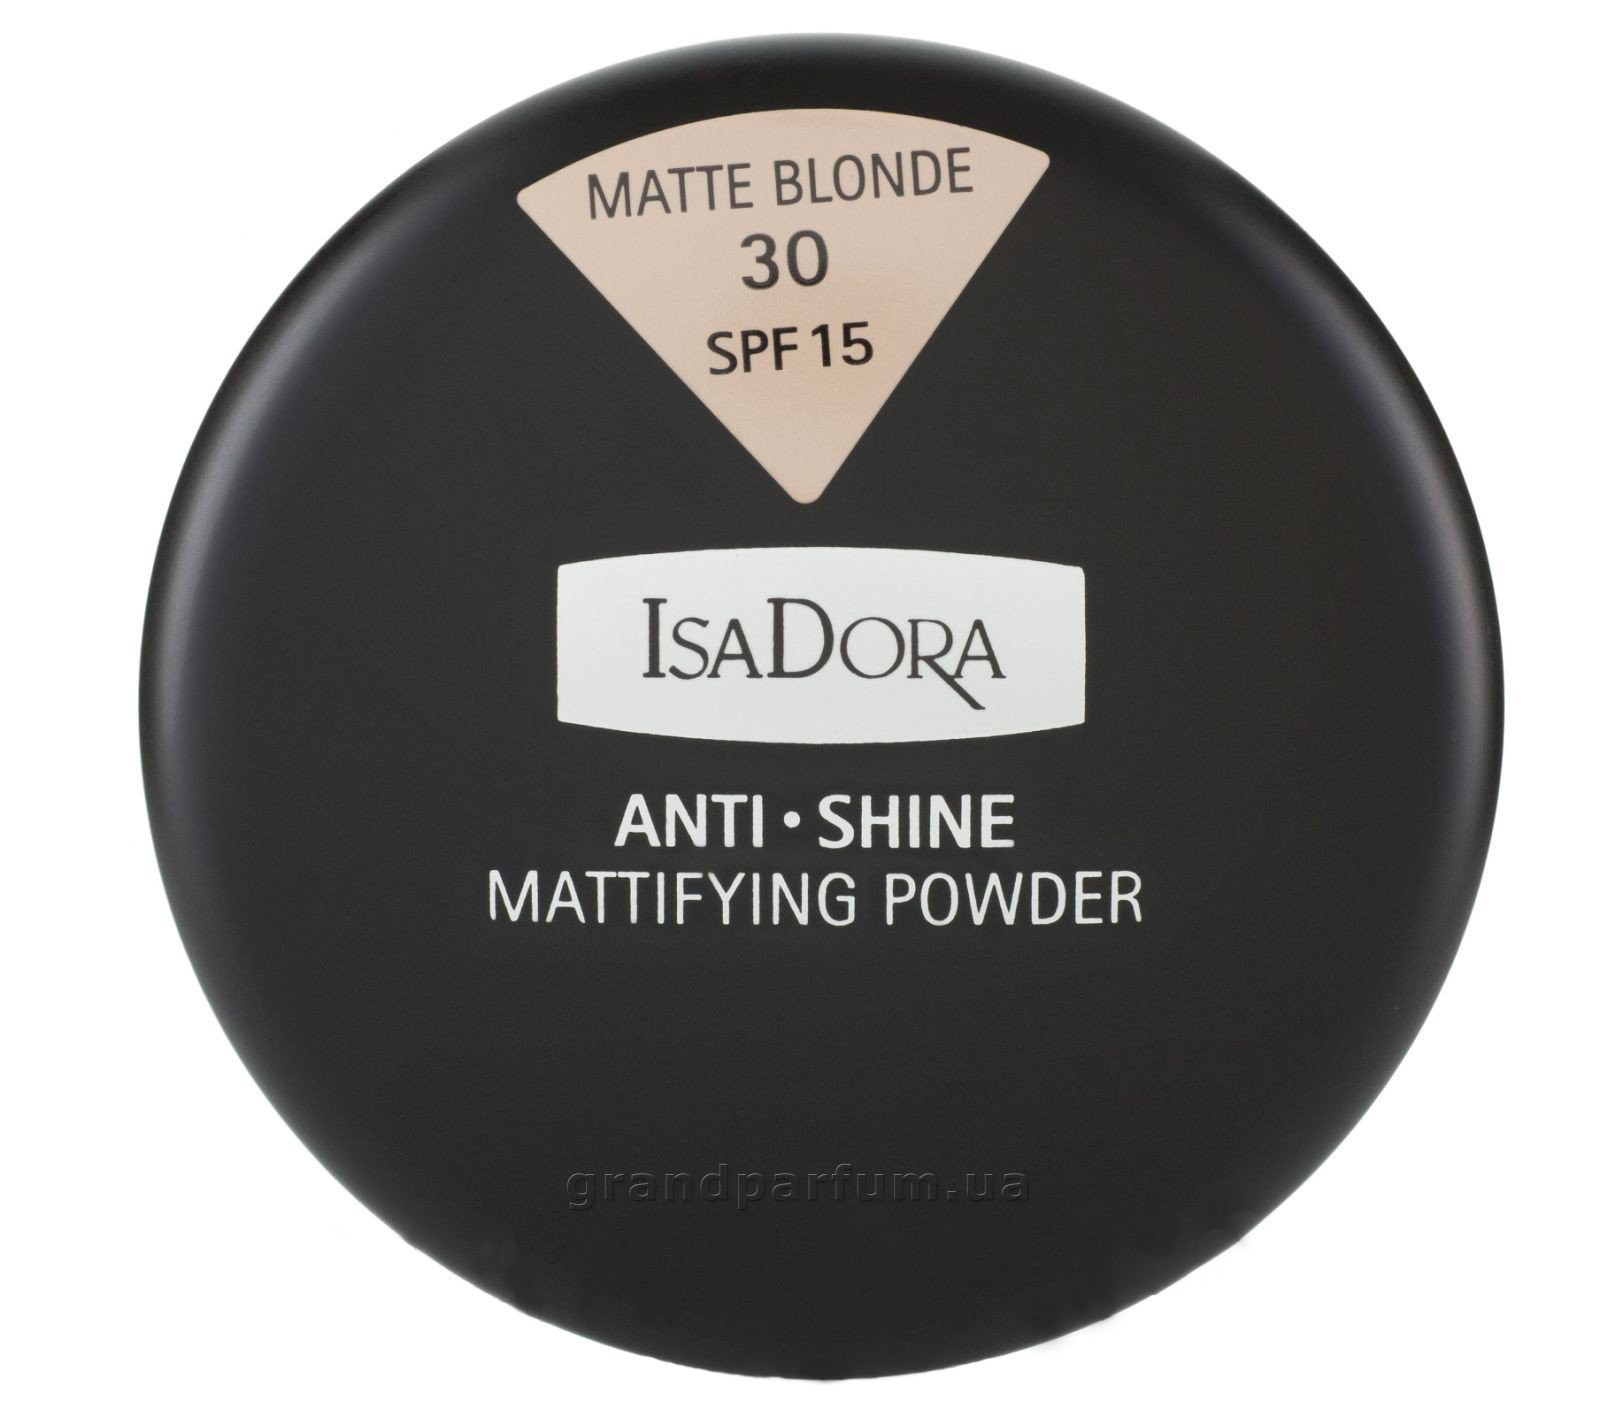 Купить Anti Shine Mattifying Powder от